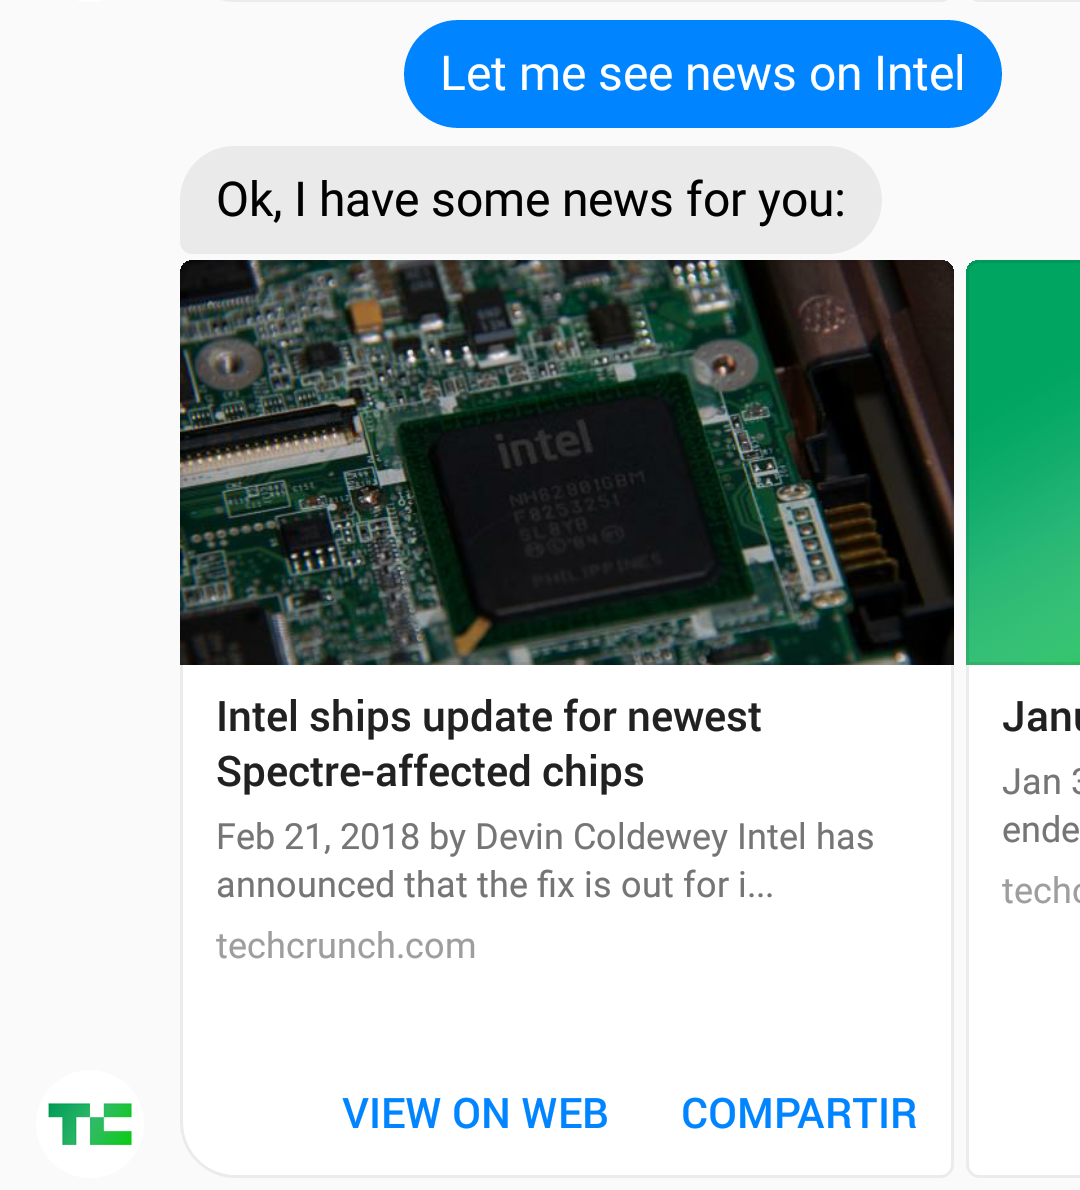 Let me see news on Intel